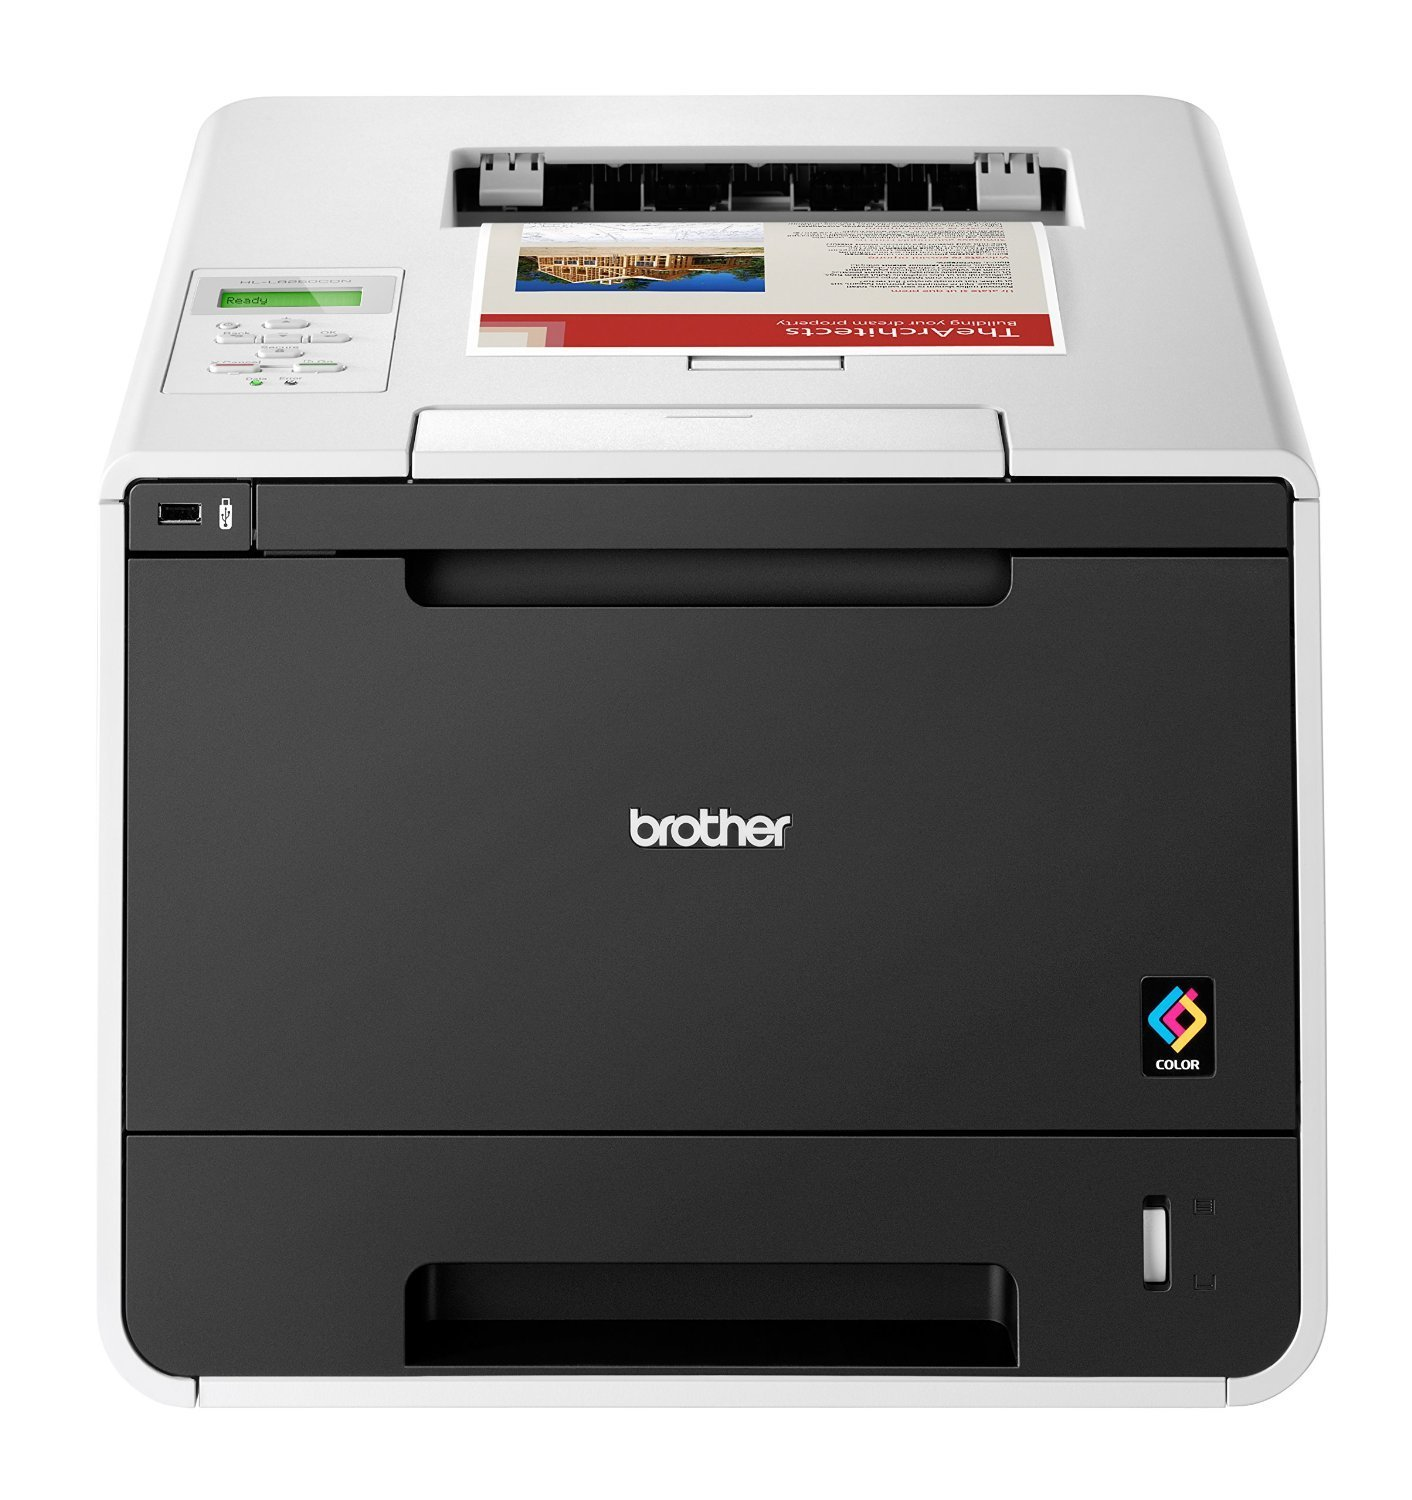 BROTHER HLL8250CDNZU1 HL-L8250CDN COLOUR 2400 X 600DPI A4 LASER PRINTER